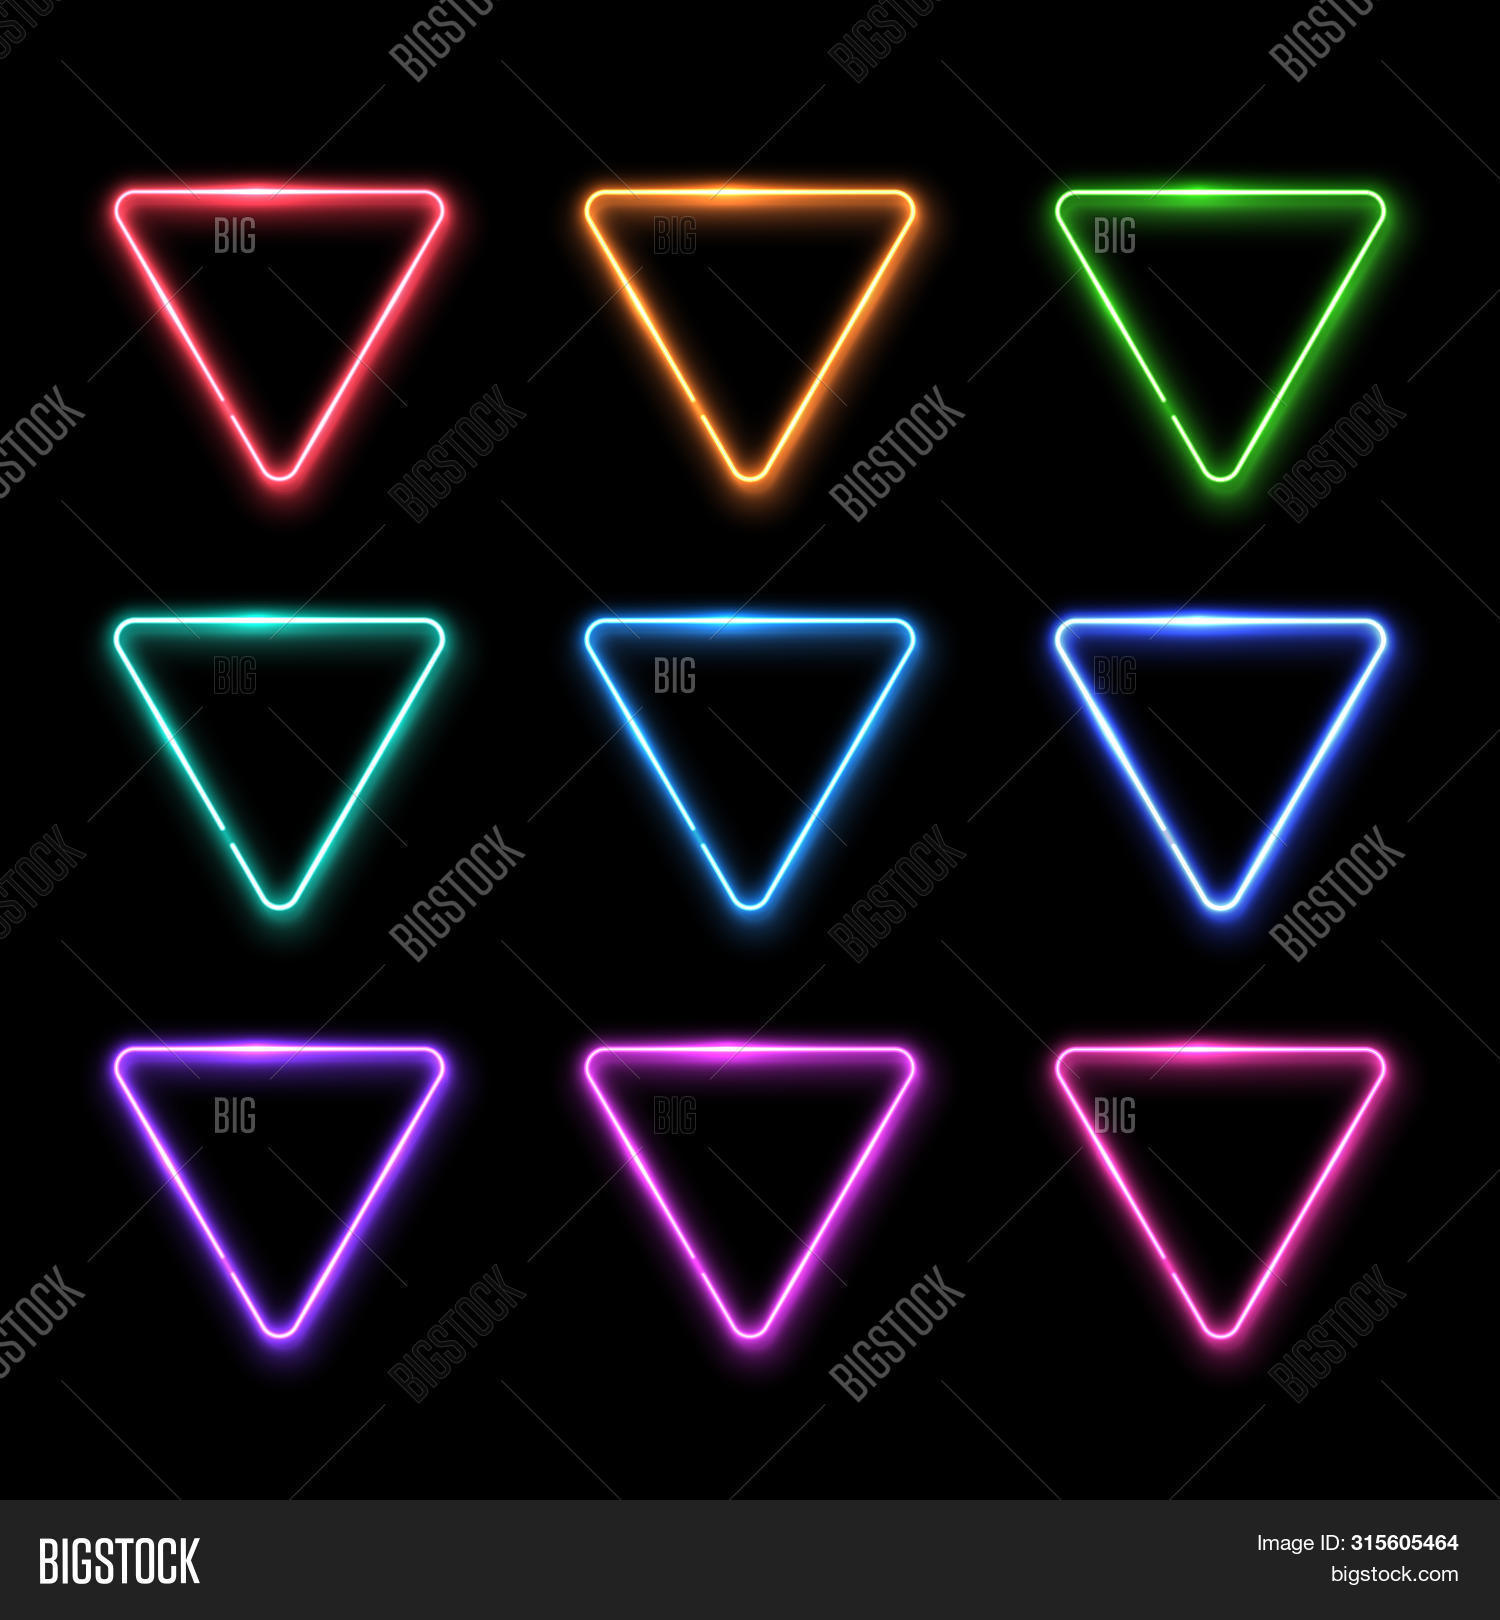 1980,80,abstract,art,background,banner,bar,blue,border,bright,casino,chrome,club,color,colorful,decoration,design,disco,effect,electric,element,energy,frame,geometric,glow,glowing,graphic,hipster,illustration,isolated,lamp,laser,light,luminous,modern,music,neon,night,poster,rave,retro,set,shape,shine,sign,space,techno,technology,triangle